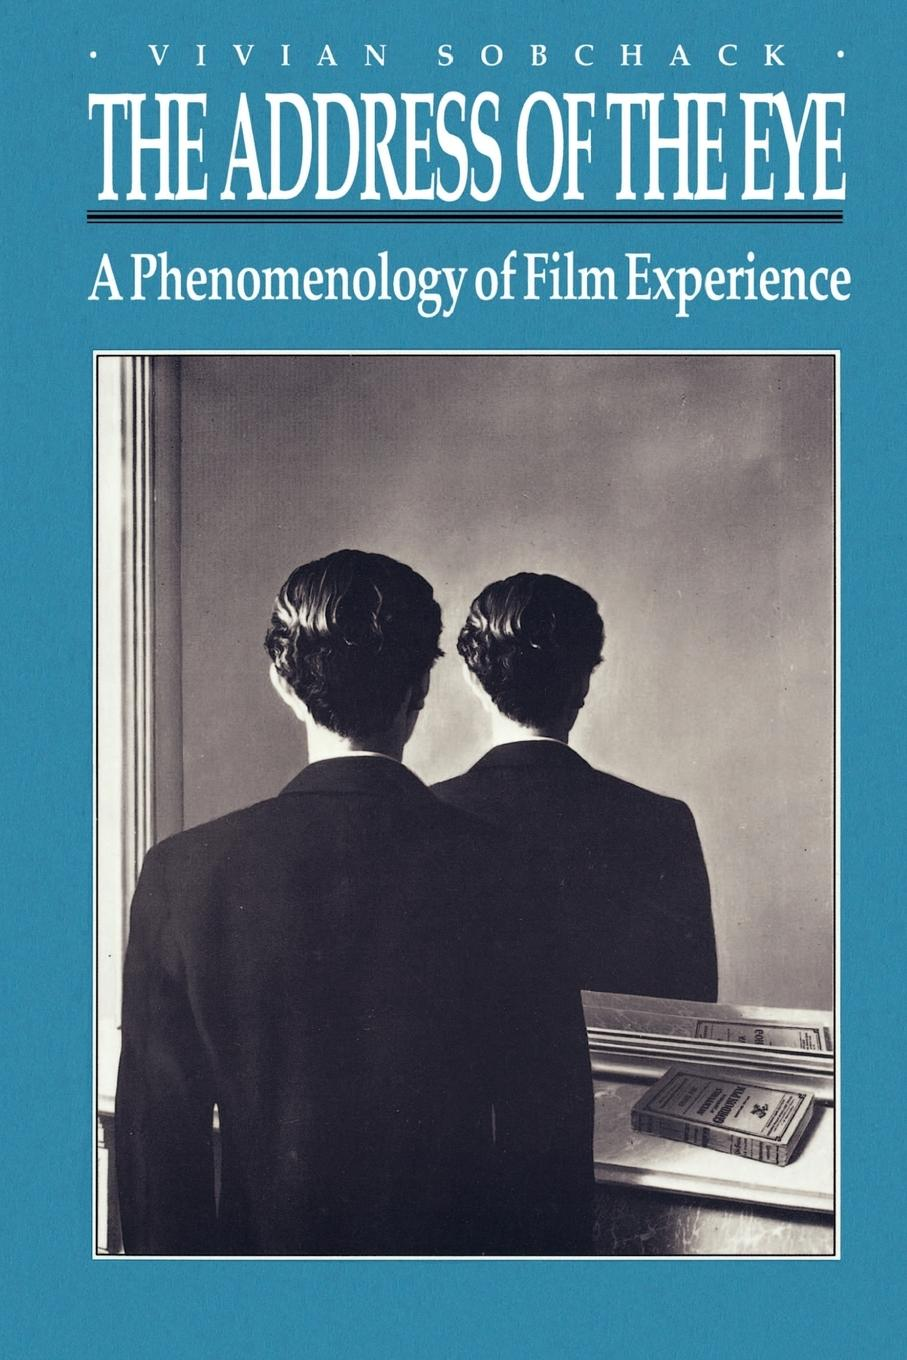 The Address of the Eye  A Phenomenology of Film Experience  Vivian Sobchack  Taschenbuch  Paperback  Englisch  1991 - Sobchack, Vivian